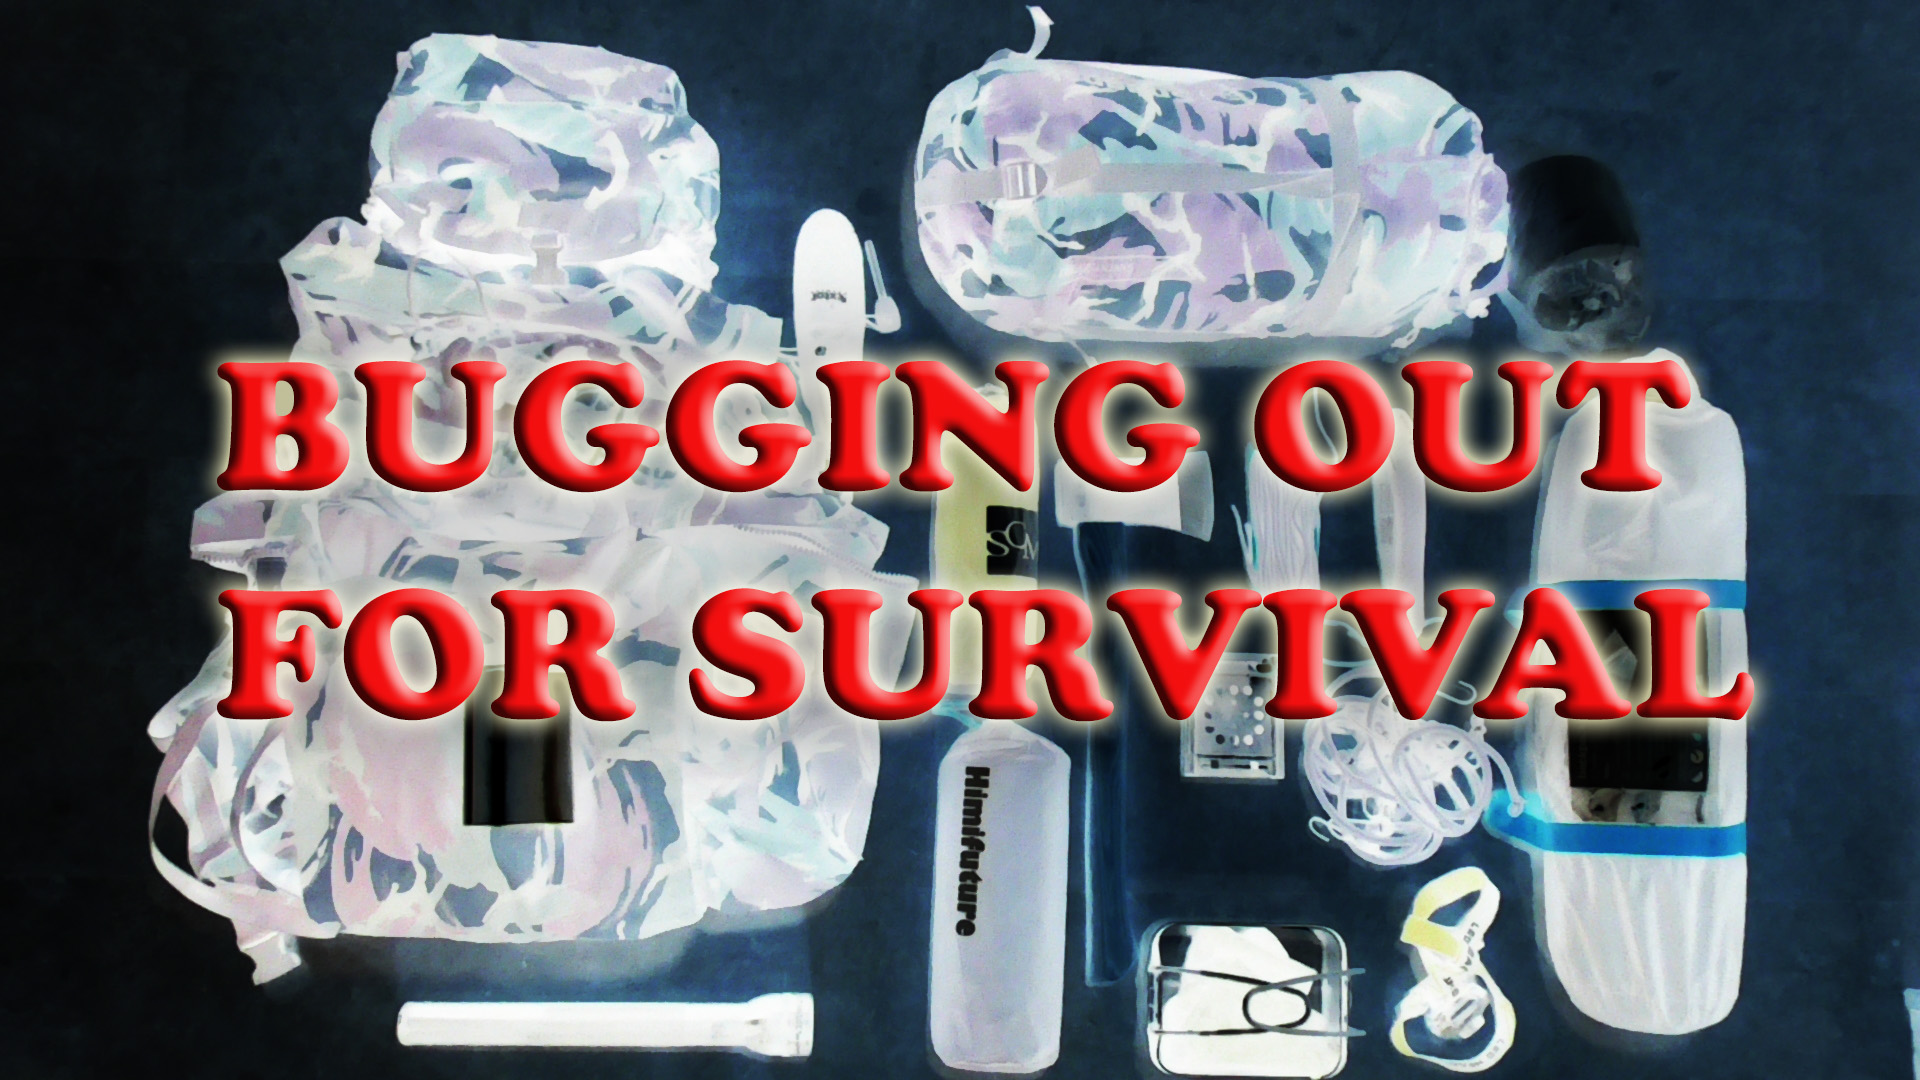 Bugging out for survival